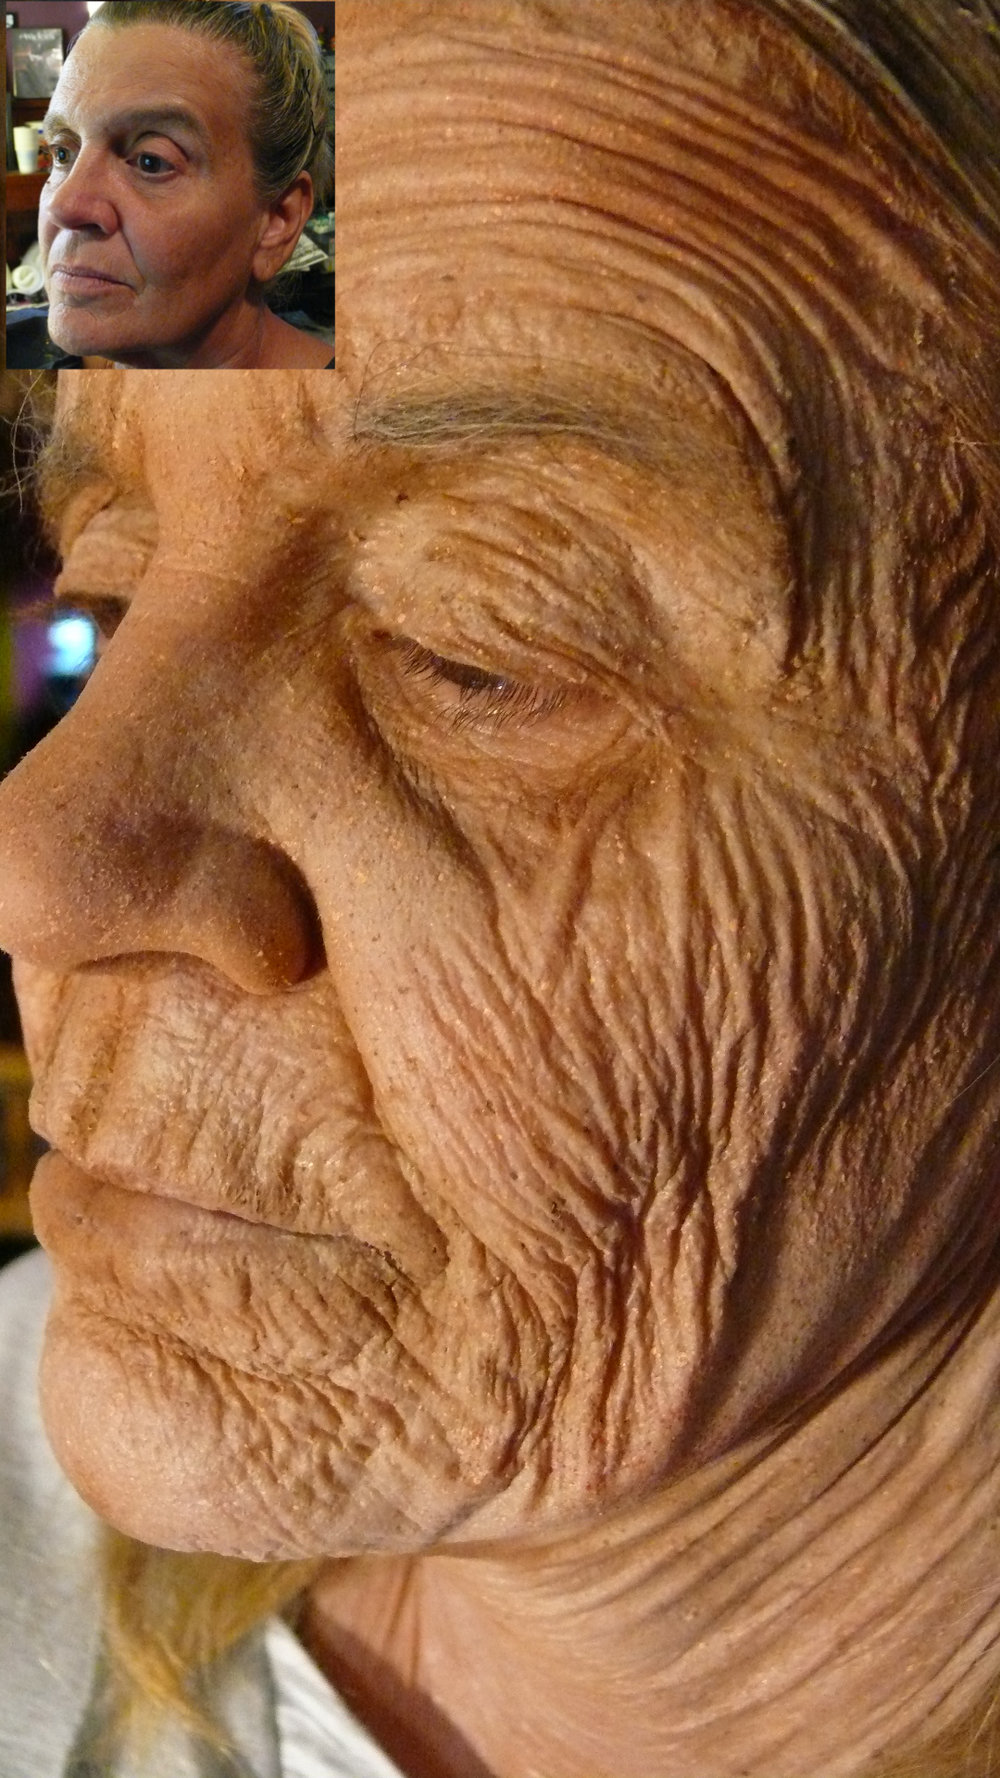 Monster Makeup FX Extreme Old Age Special Effects Makeup.JPG